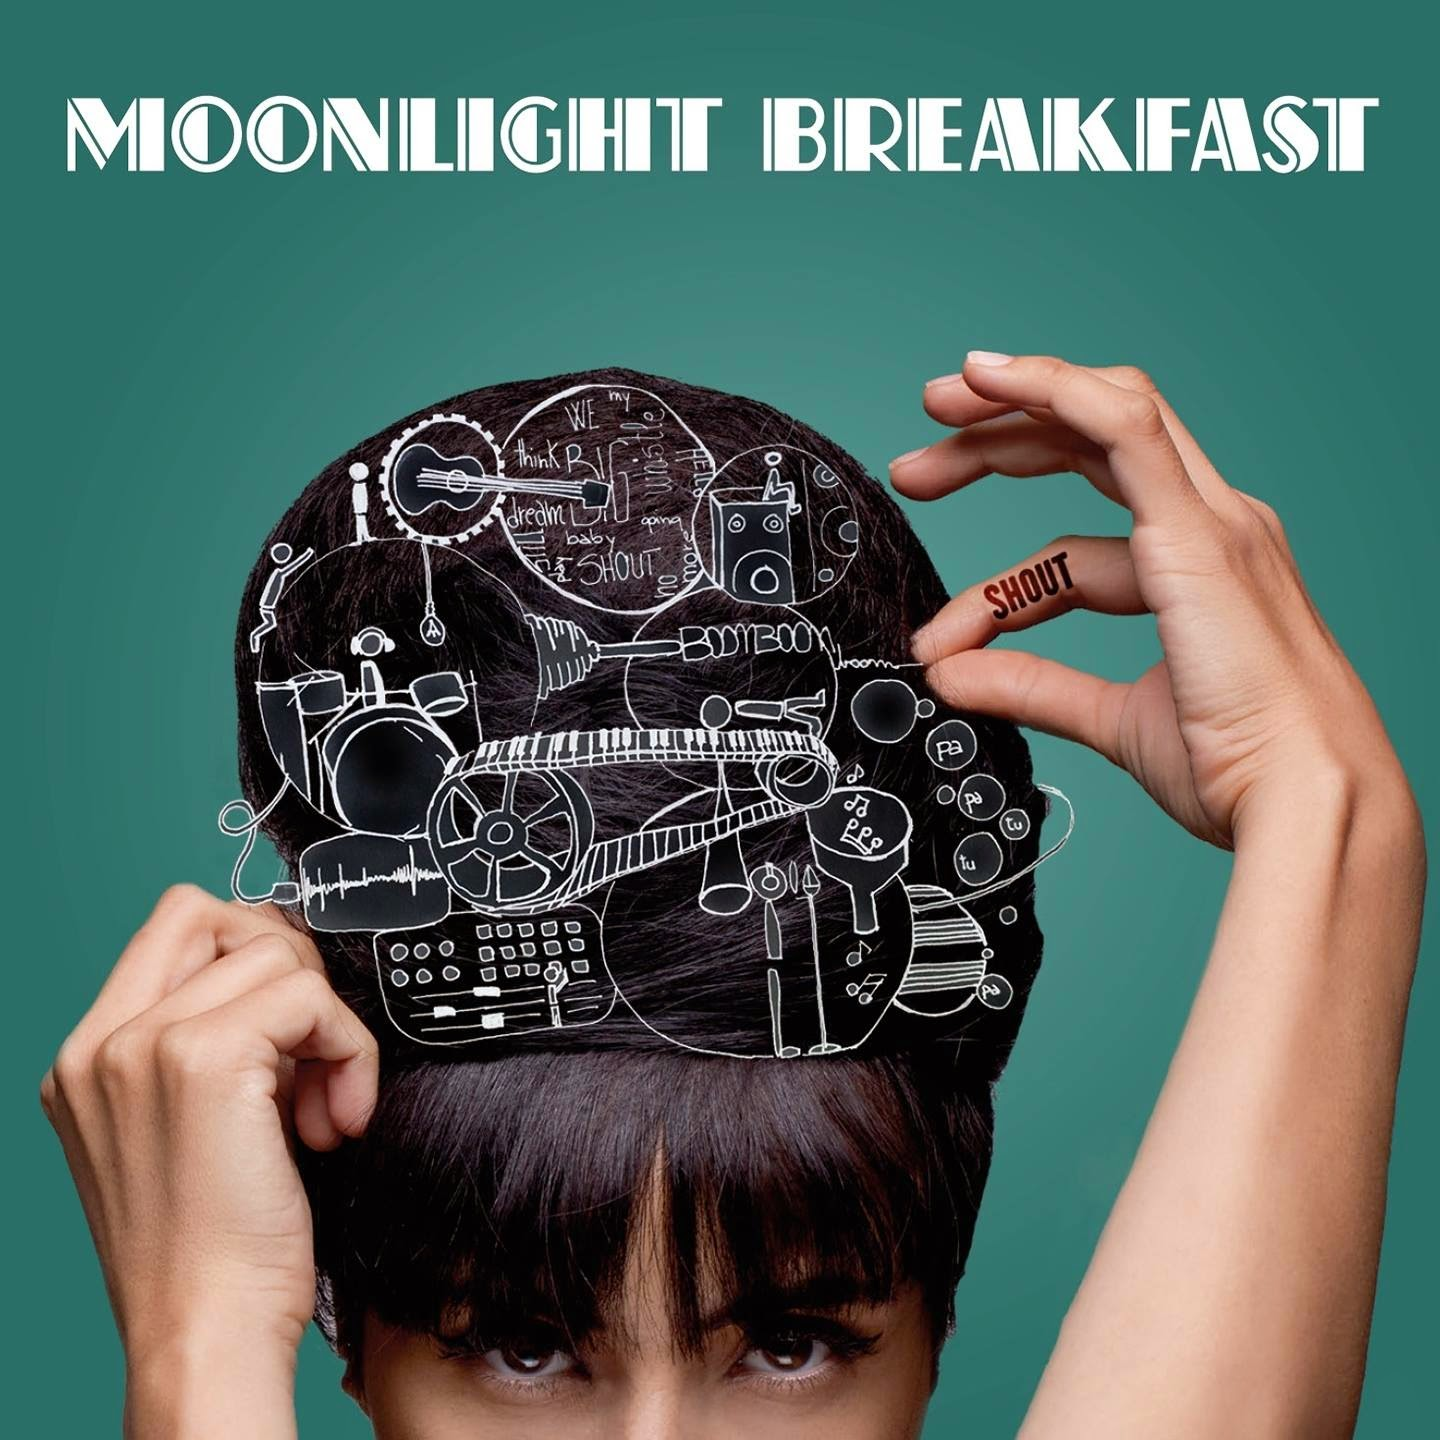 Moonlight Breakfast - Shout